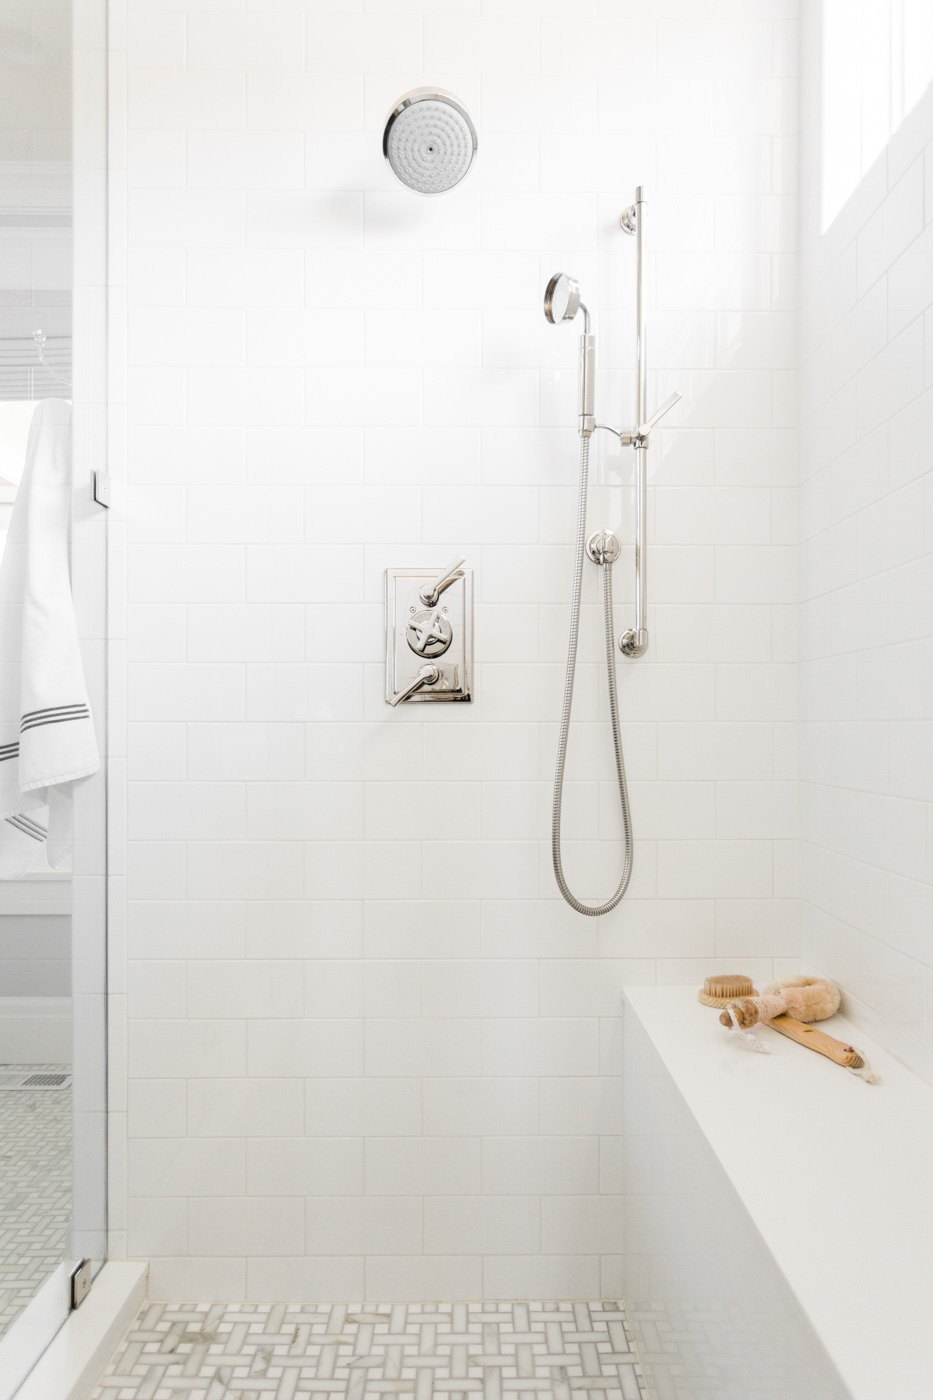 Shower+Details+__+Studio+McGee-1.jpg